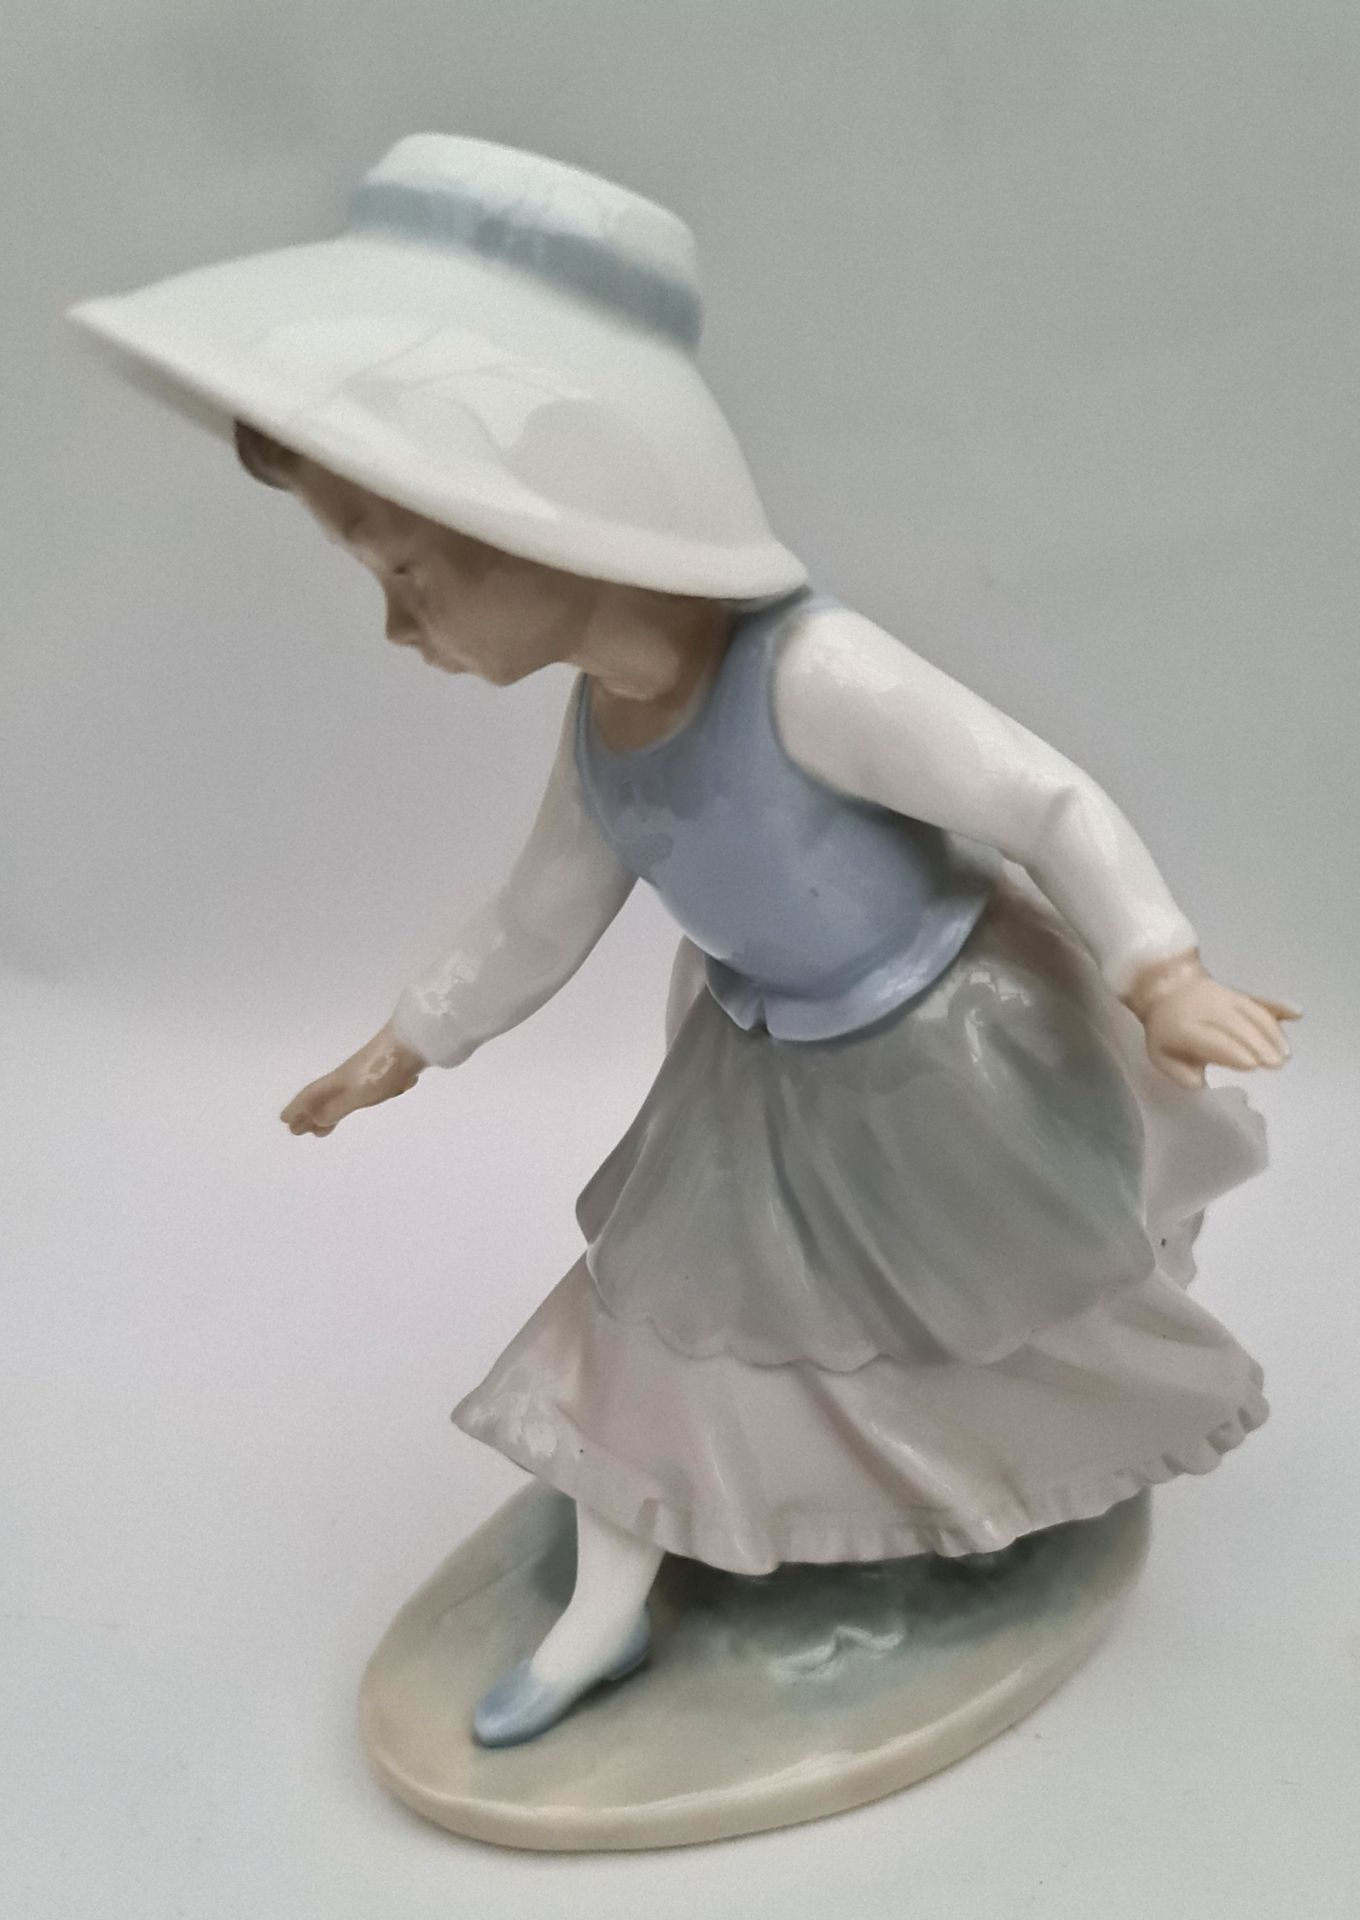 Vintage Lladro Figure 8 inches tall - Image 2 of 3